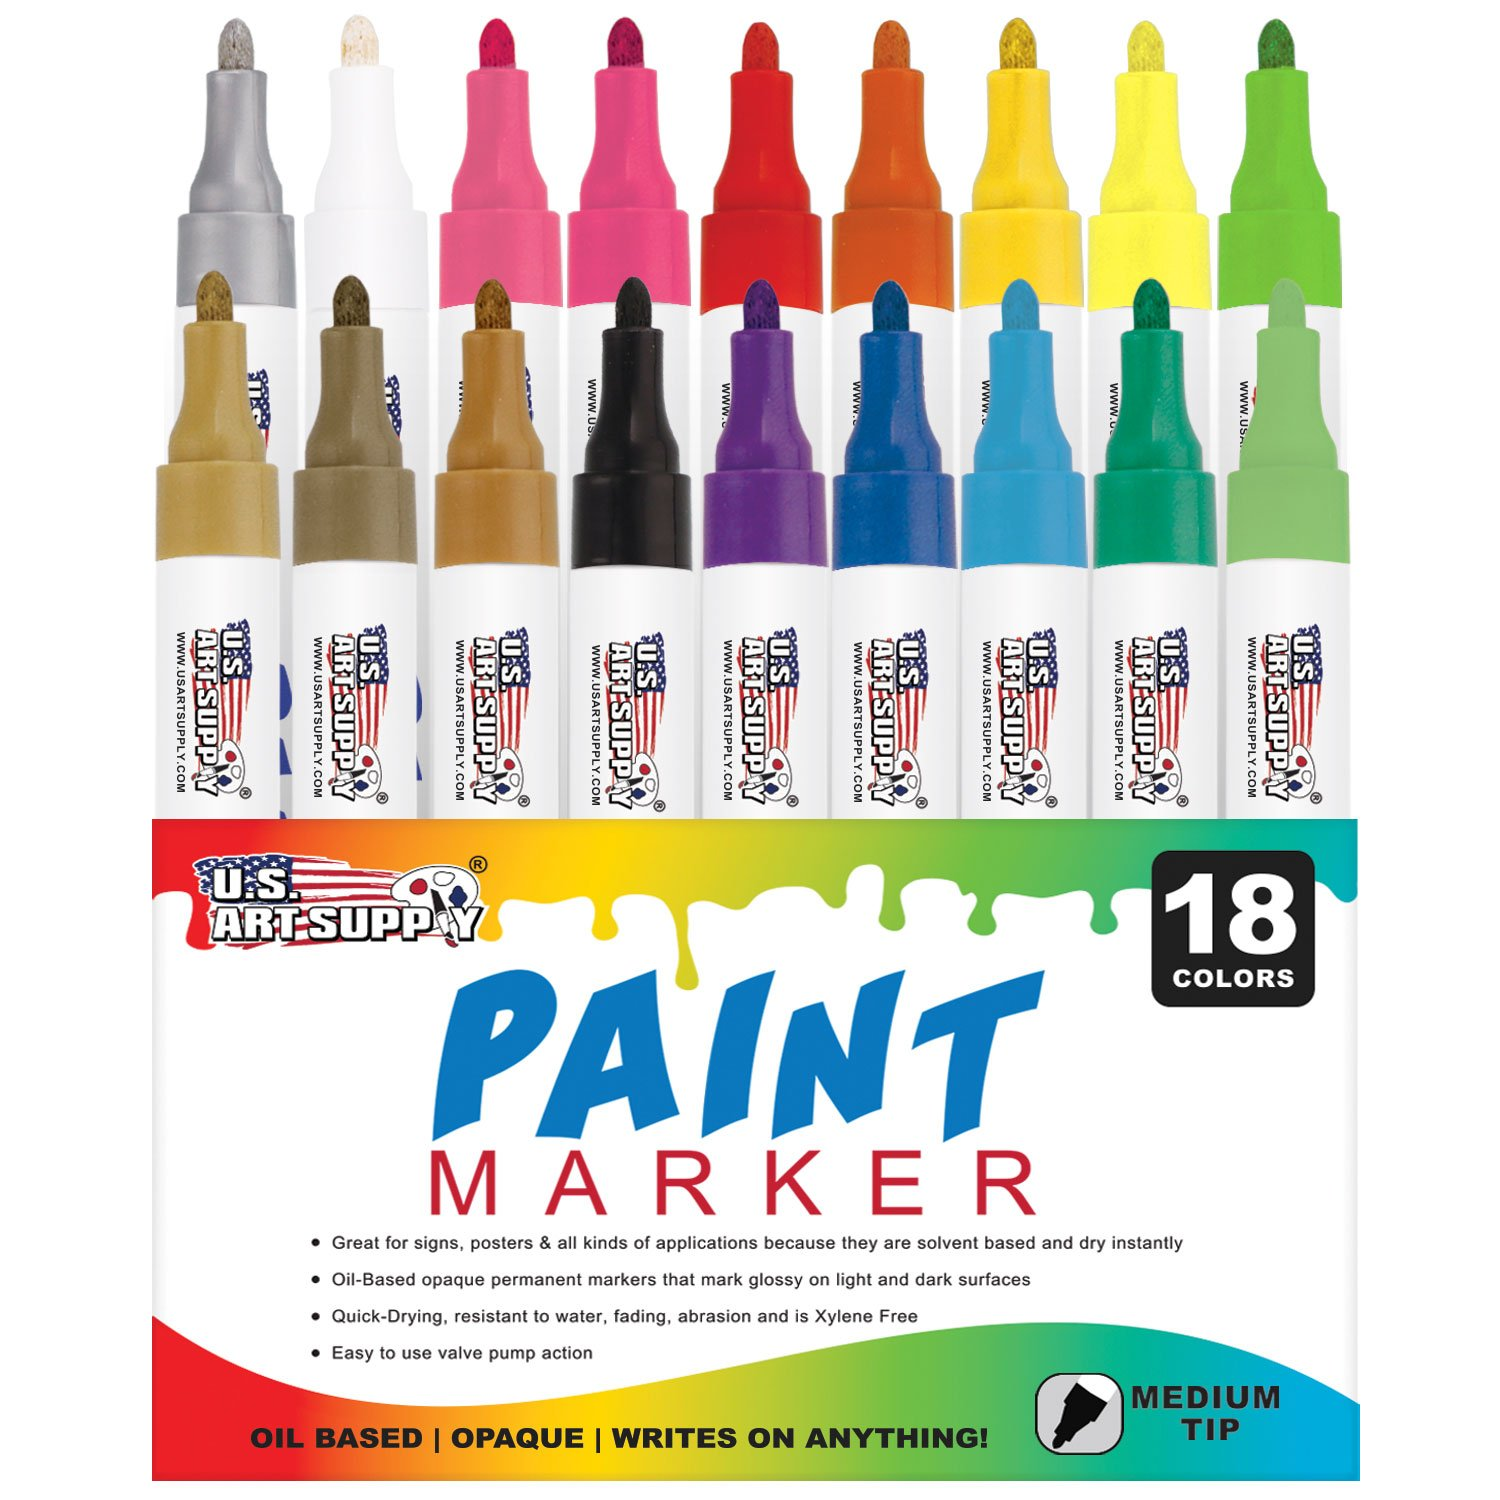 U.S. Art Supply 18 Color Set of Medium Point Tip Oil Based Paint Pen Markers - Permanent Ink that Works on Most Surfaces Glass, Wood, Metal, Rubber, Rocks, Stone, Arts, Crafts & Tools US Art Supply PP18-MEDIUM